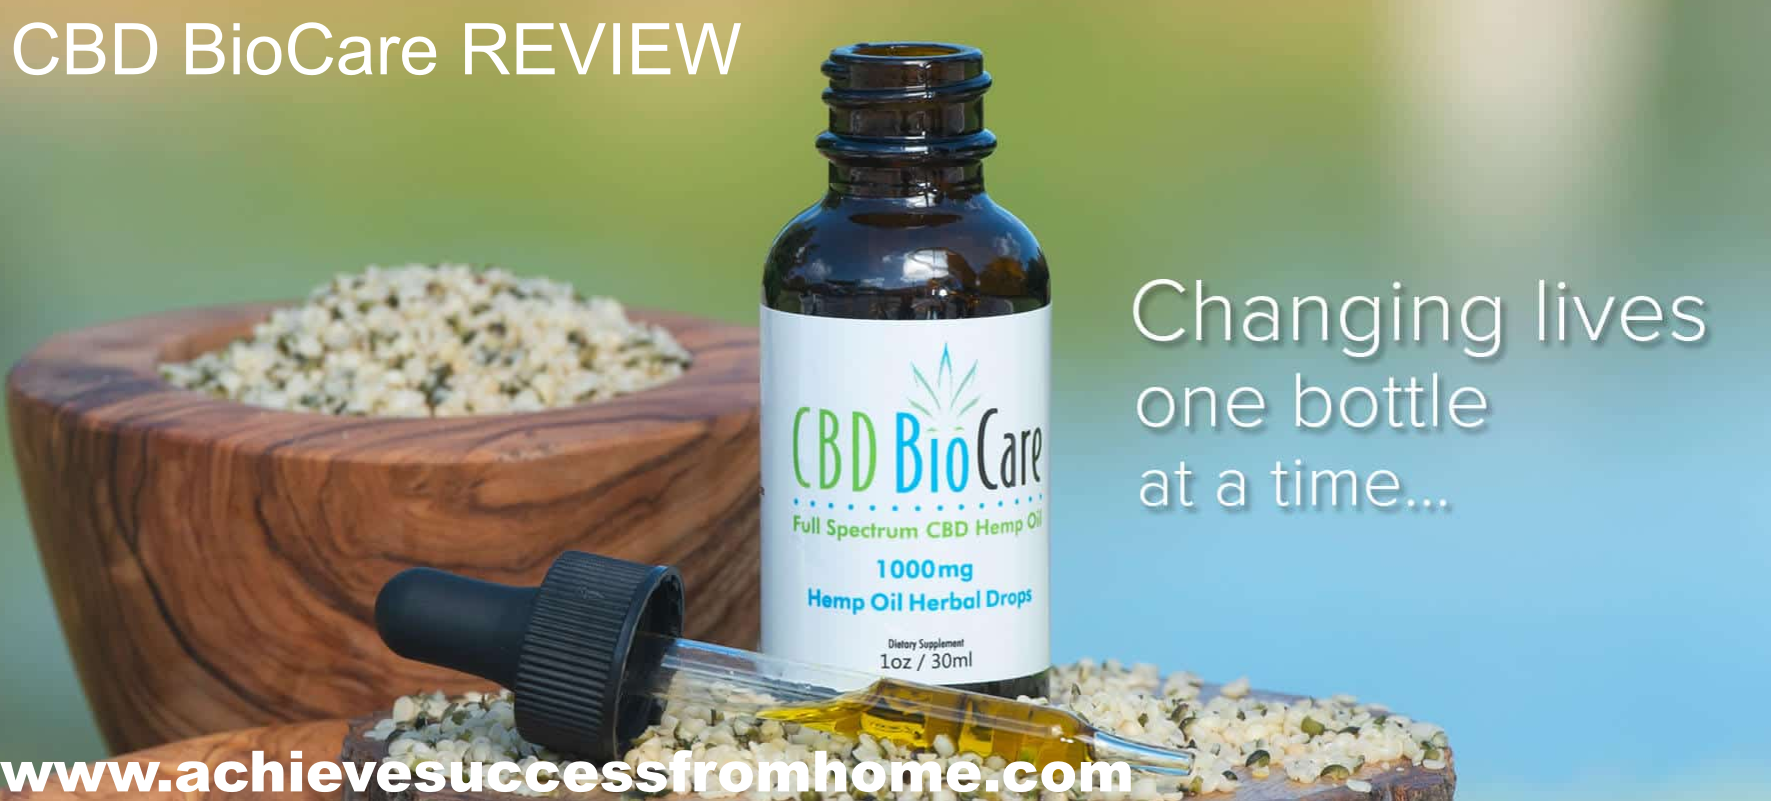 is CBD BioCare a - Great business